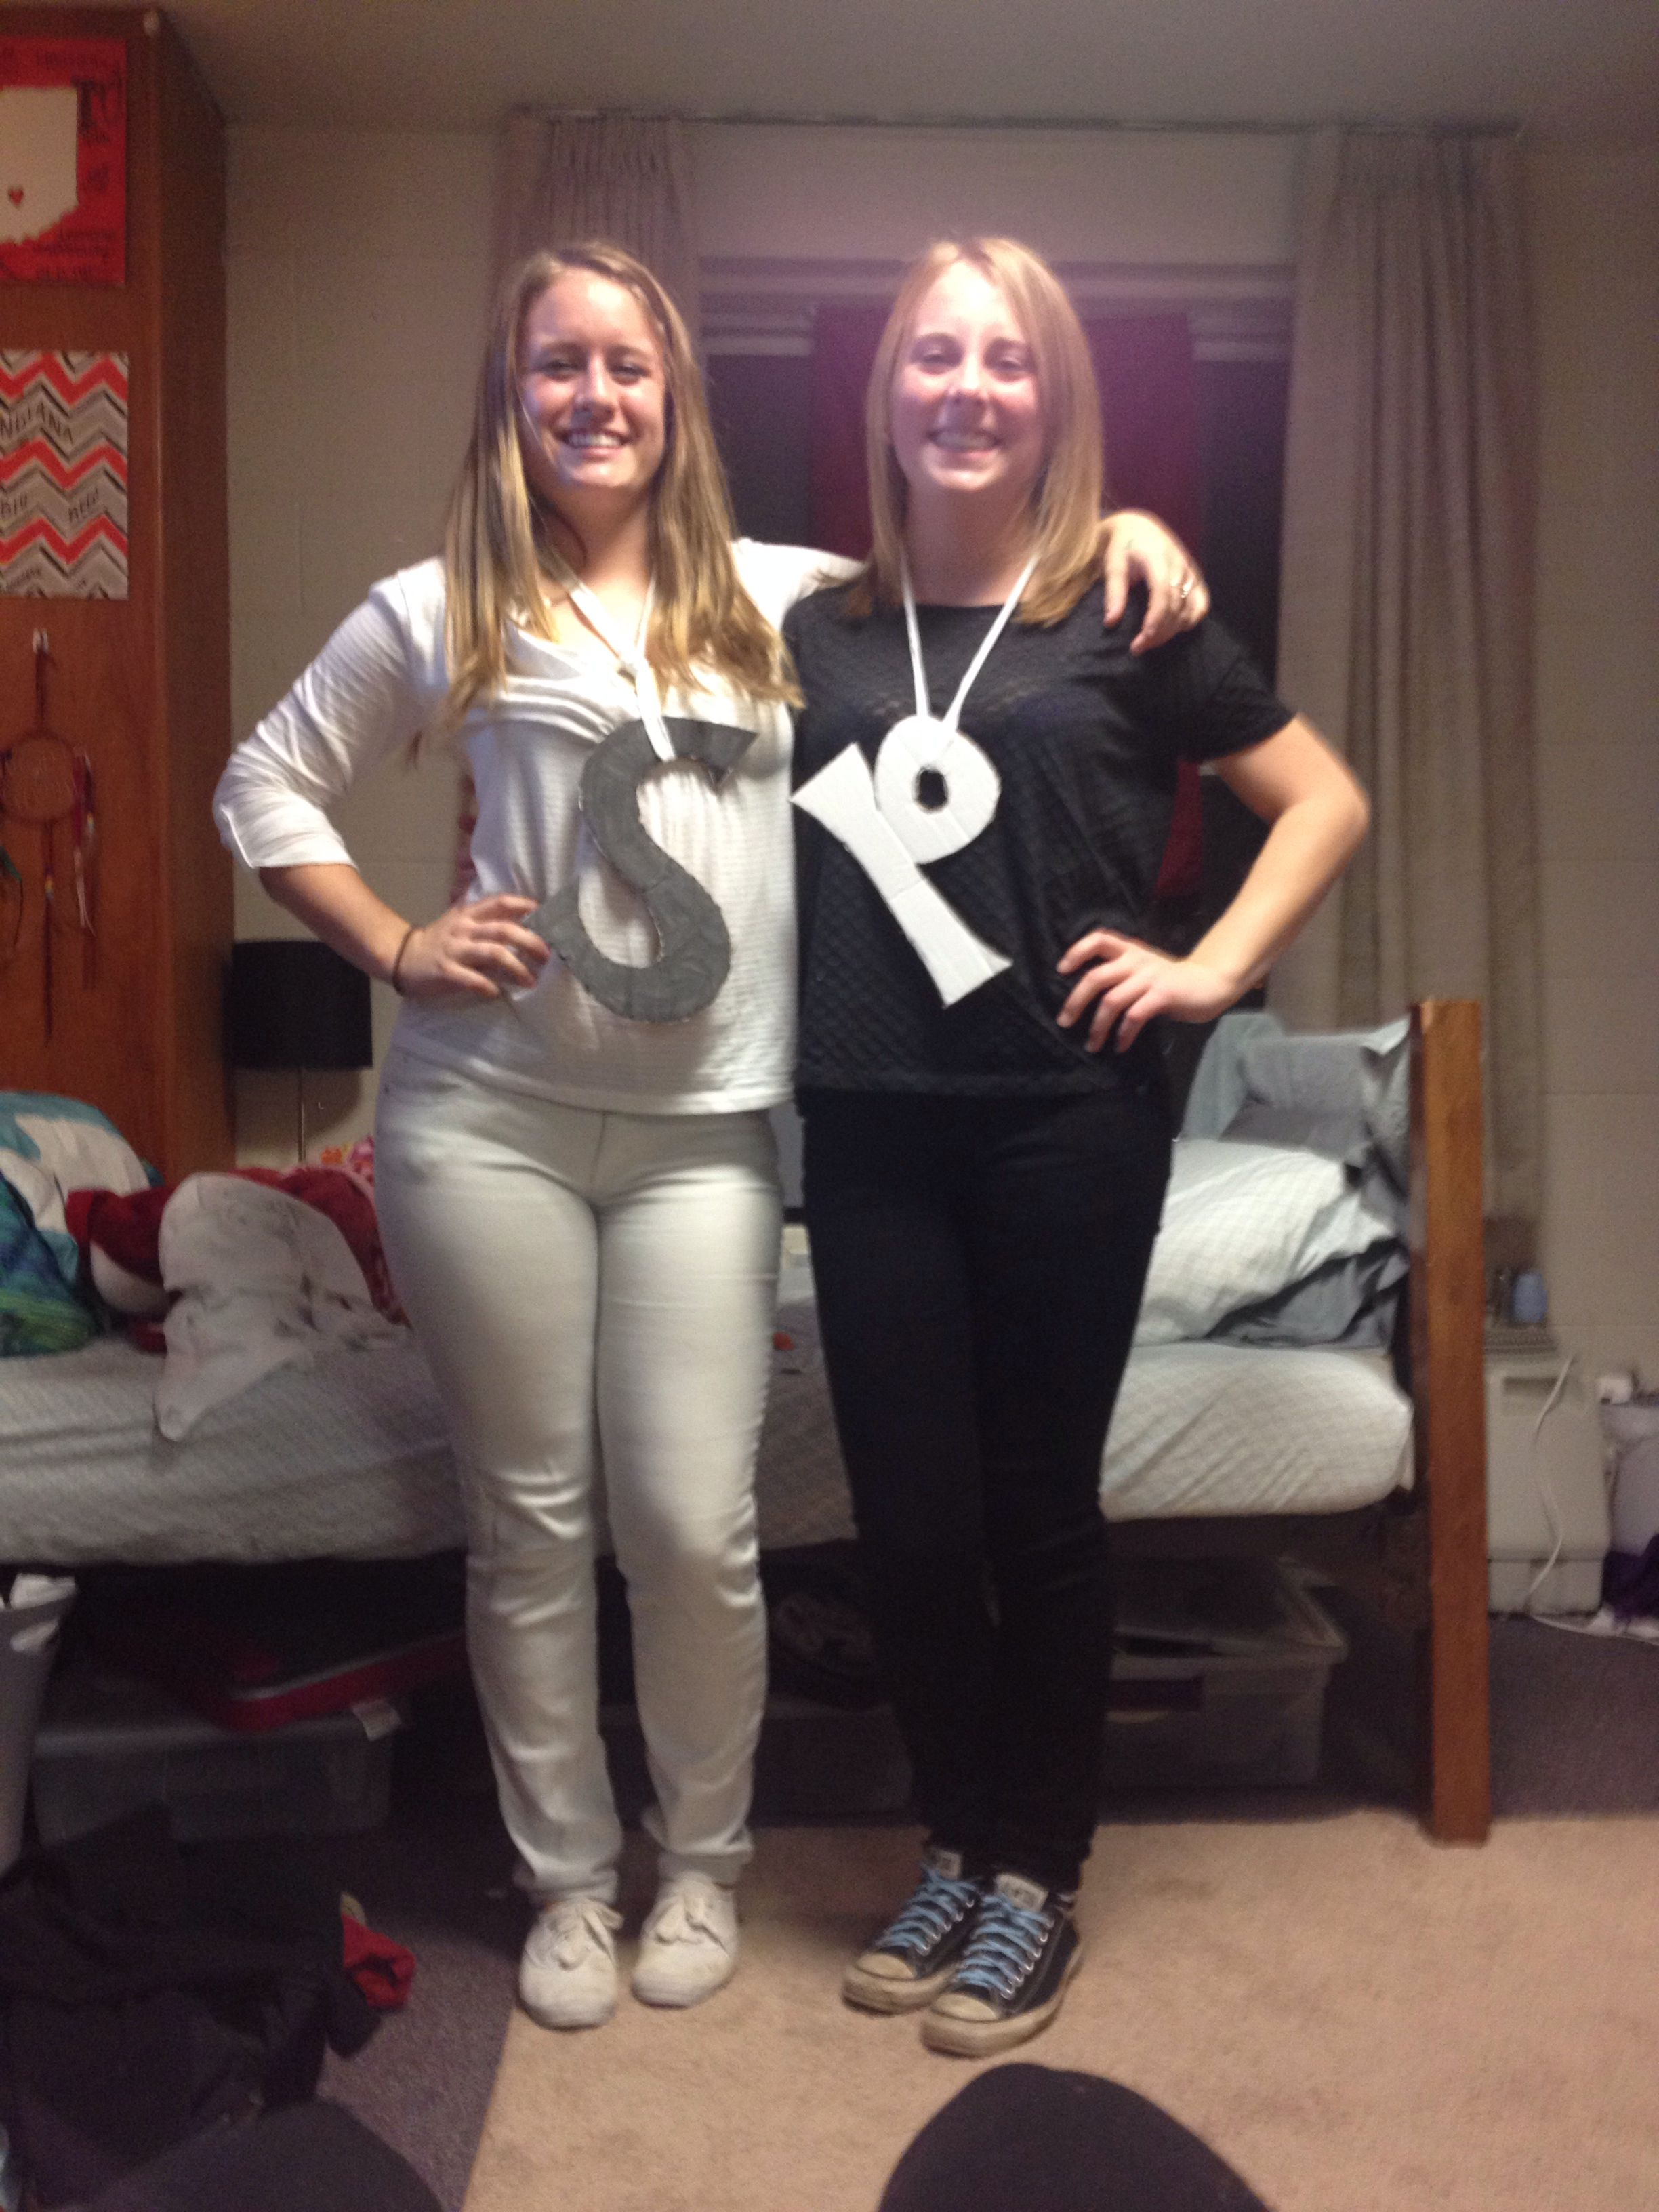 salt and pepper halloween costume | halloween costume ideas